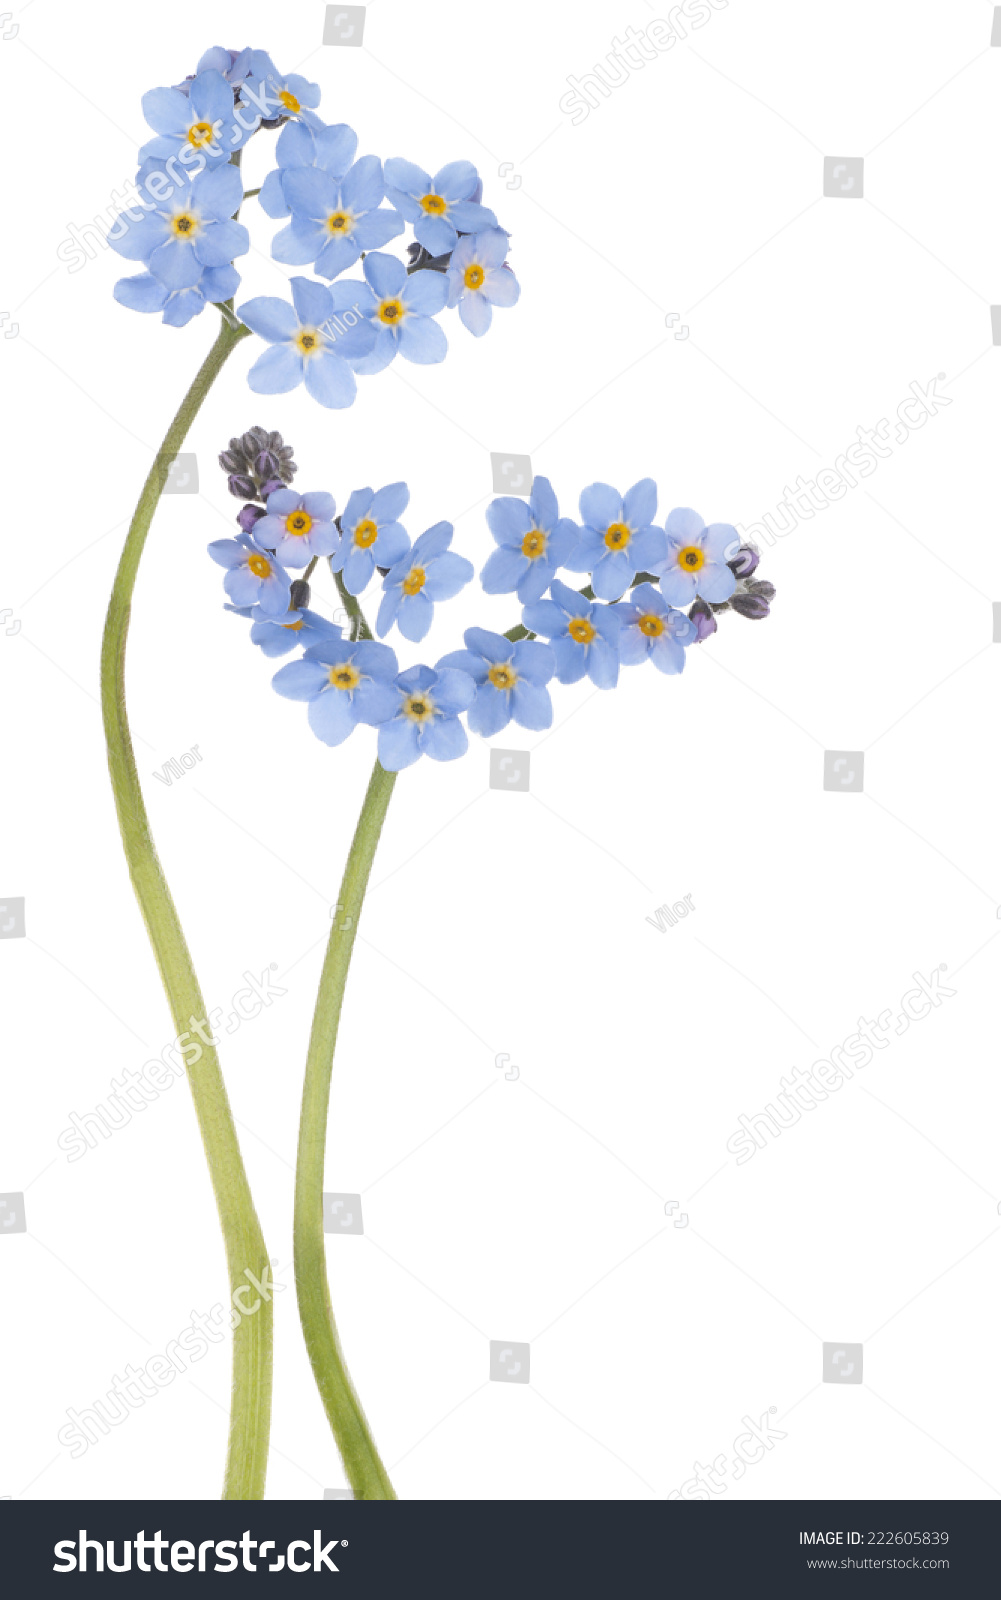 Studio Shot Of Blue Colored Forget Me Not Flowers Isolated On White